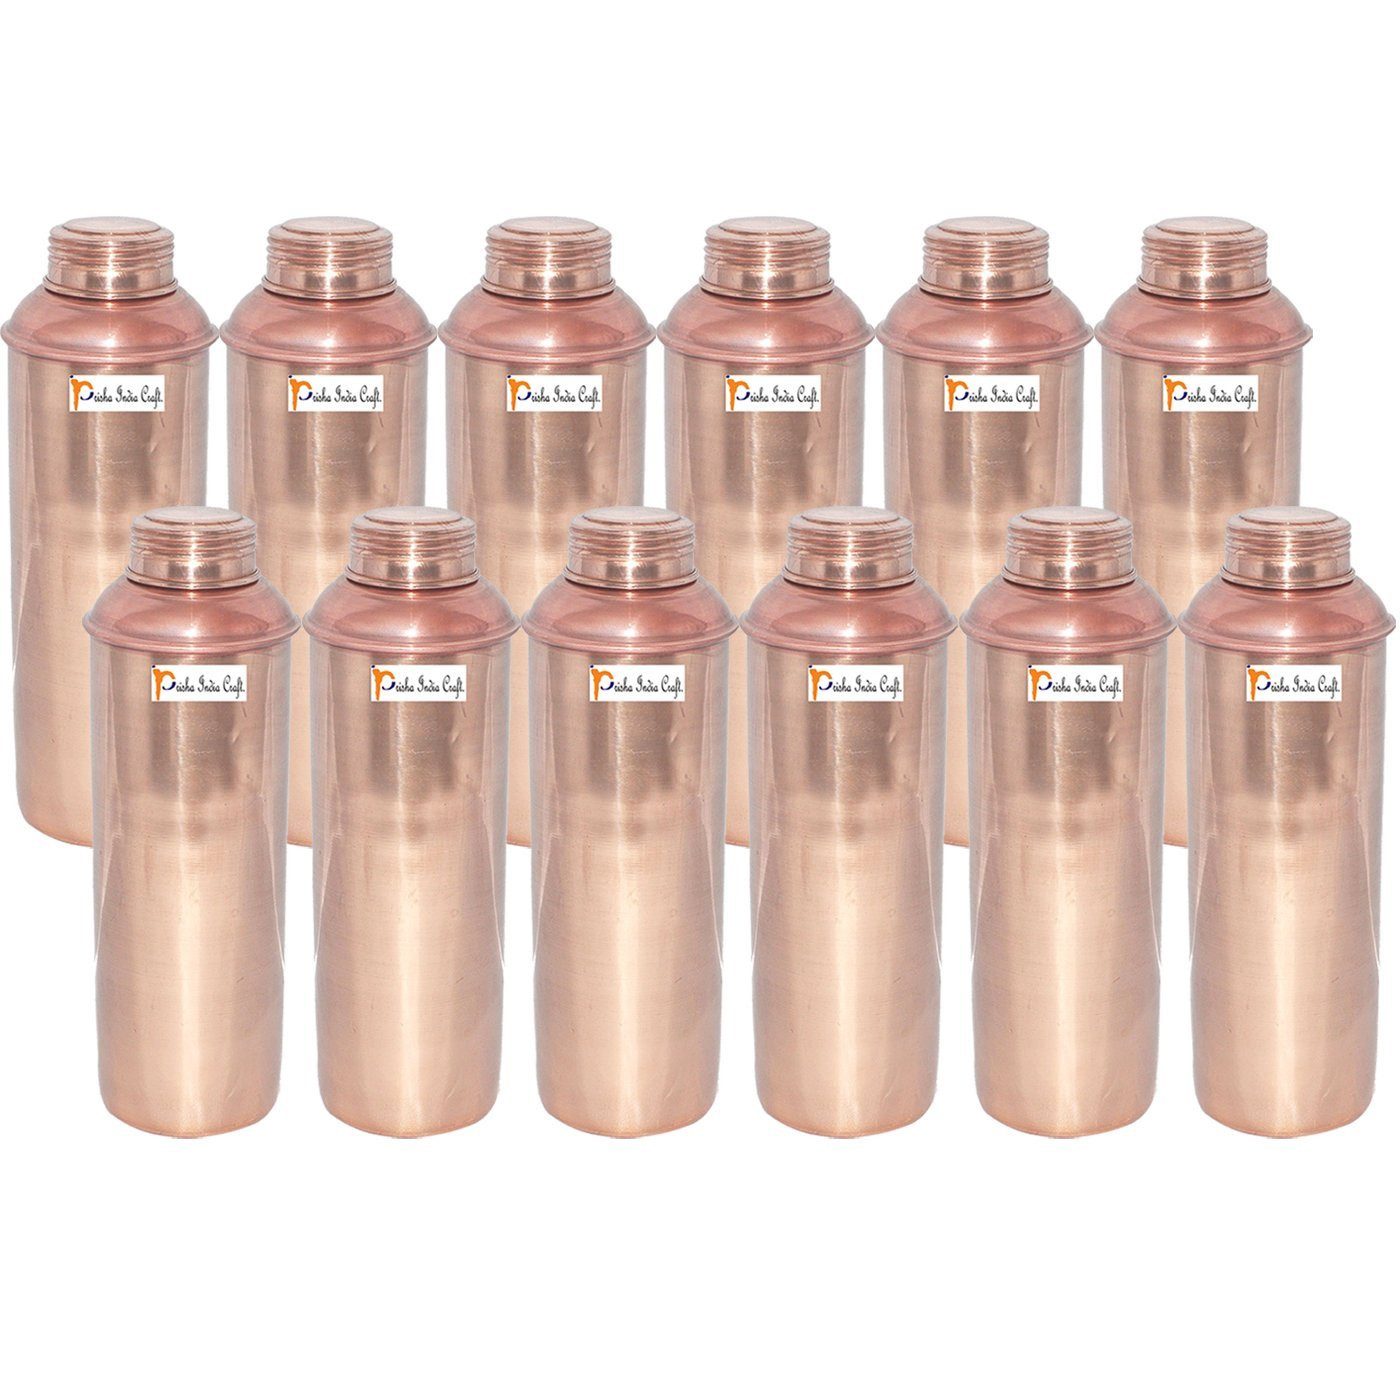 750 ML / 25 oz - Set of 12 - Prisha India Craft ® CHRISTMAS GIFT Pure Copper Water Bottle Pitcher for Ayurvedic Health Benefits - Handmade Copper Water Bottles